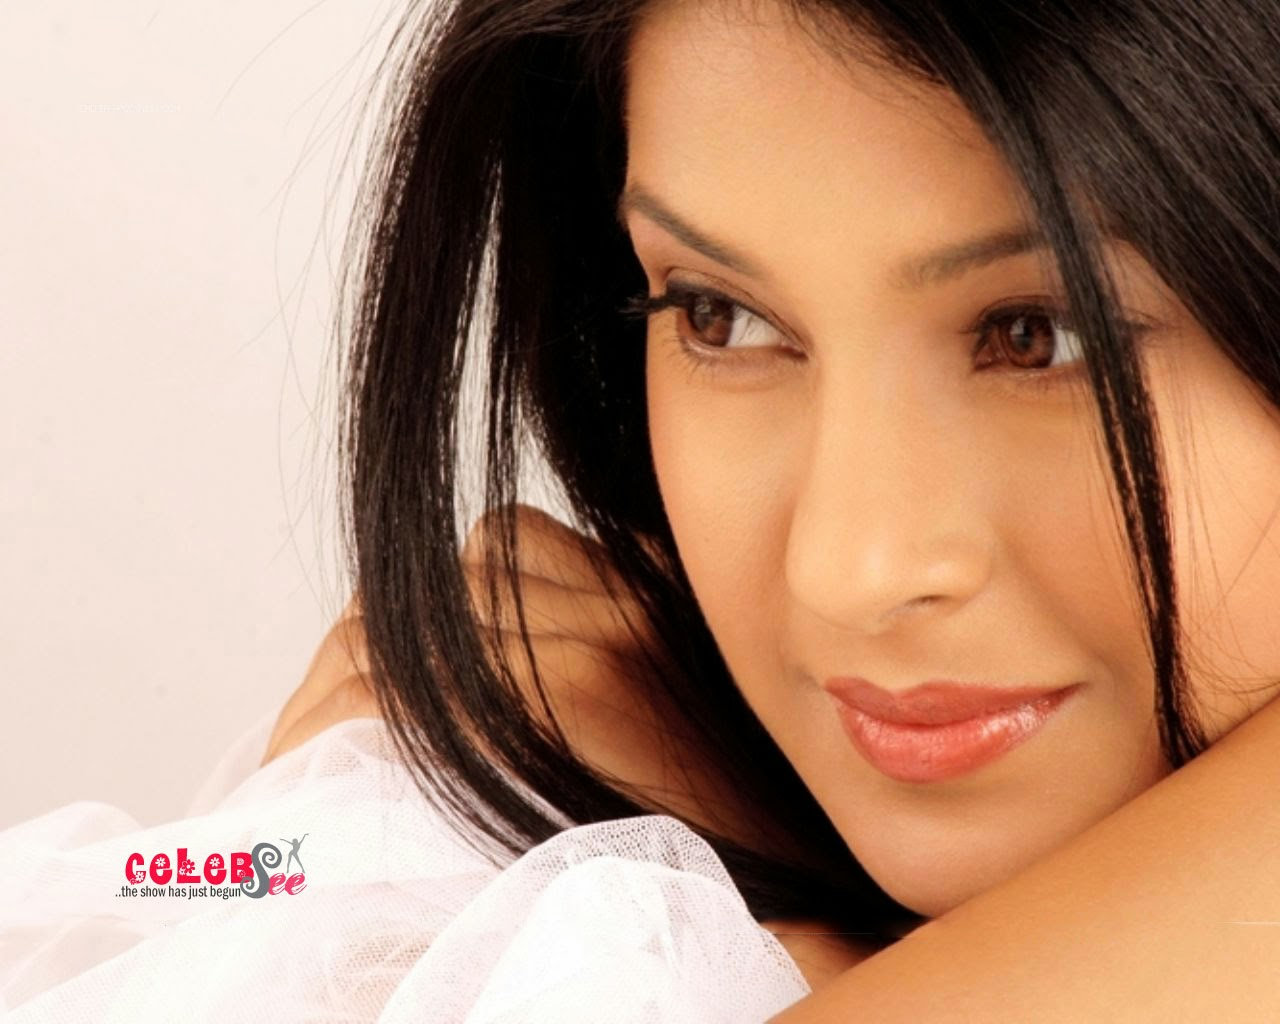 Celebsview sexy jennifer winget - Desi actress wallpaper ...